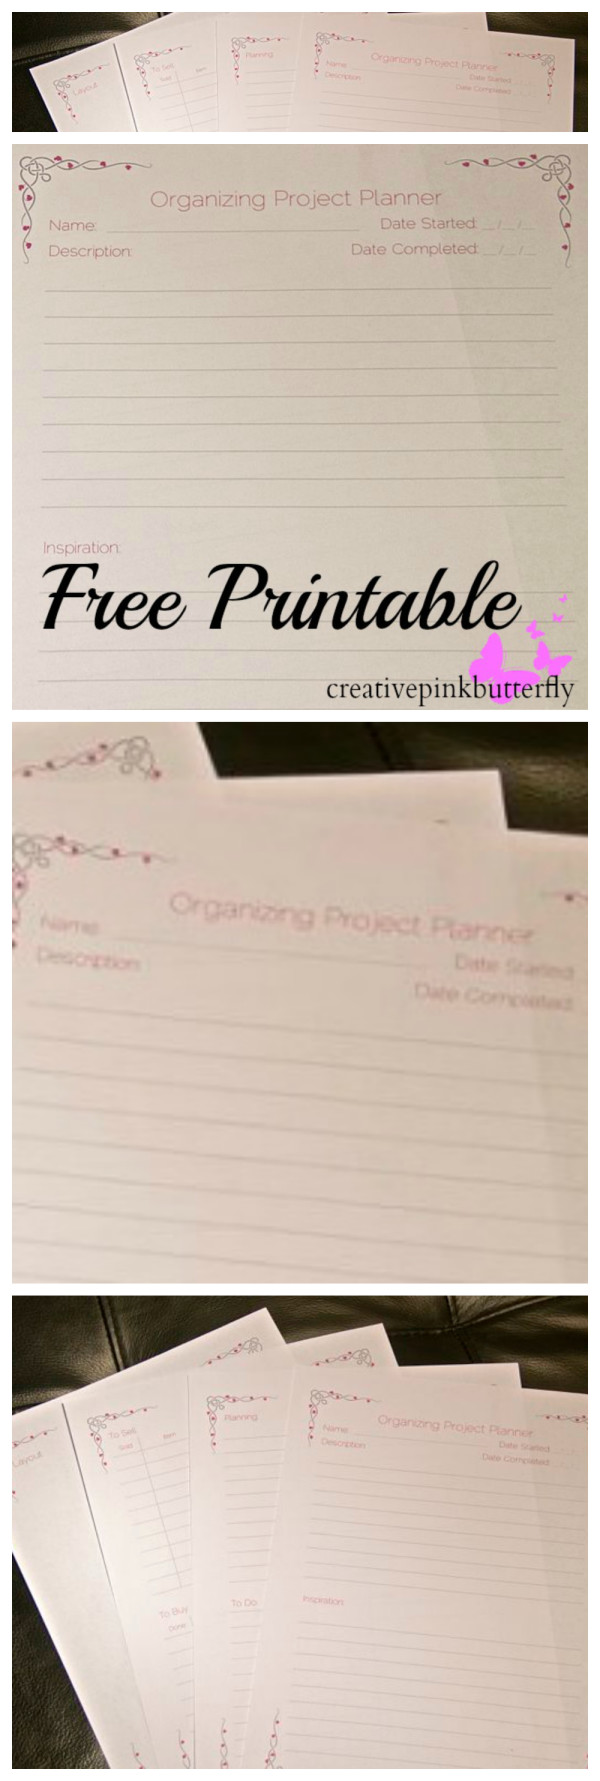 Organizing Project Planner - Free Printable